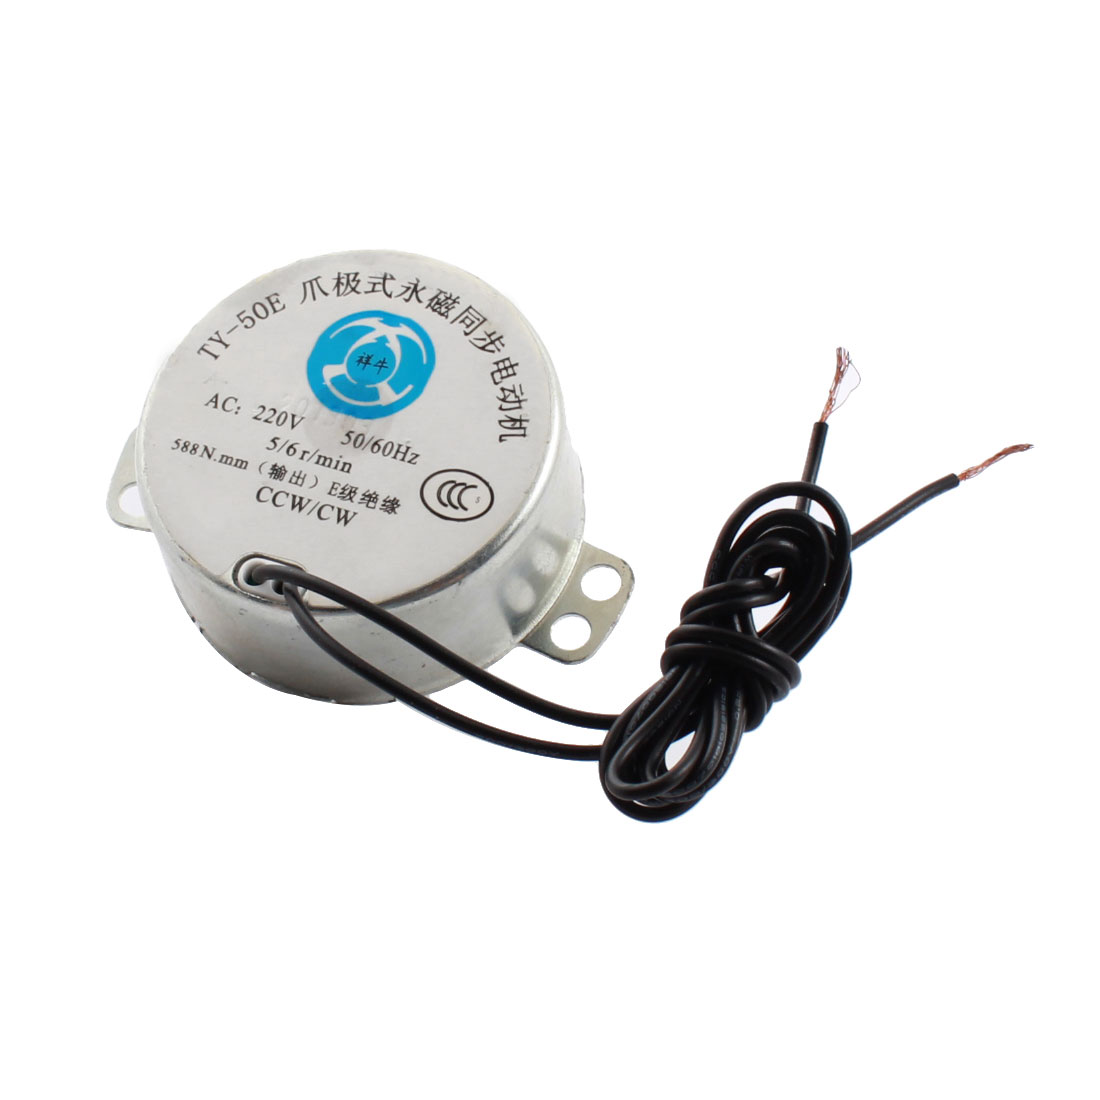 AC 220V 5/6RPM Speed Output 4mm Dia Hole 2-Wire Metal Shell CW/CCW Rotating Synchronous Electric Motor